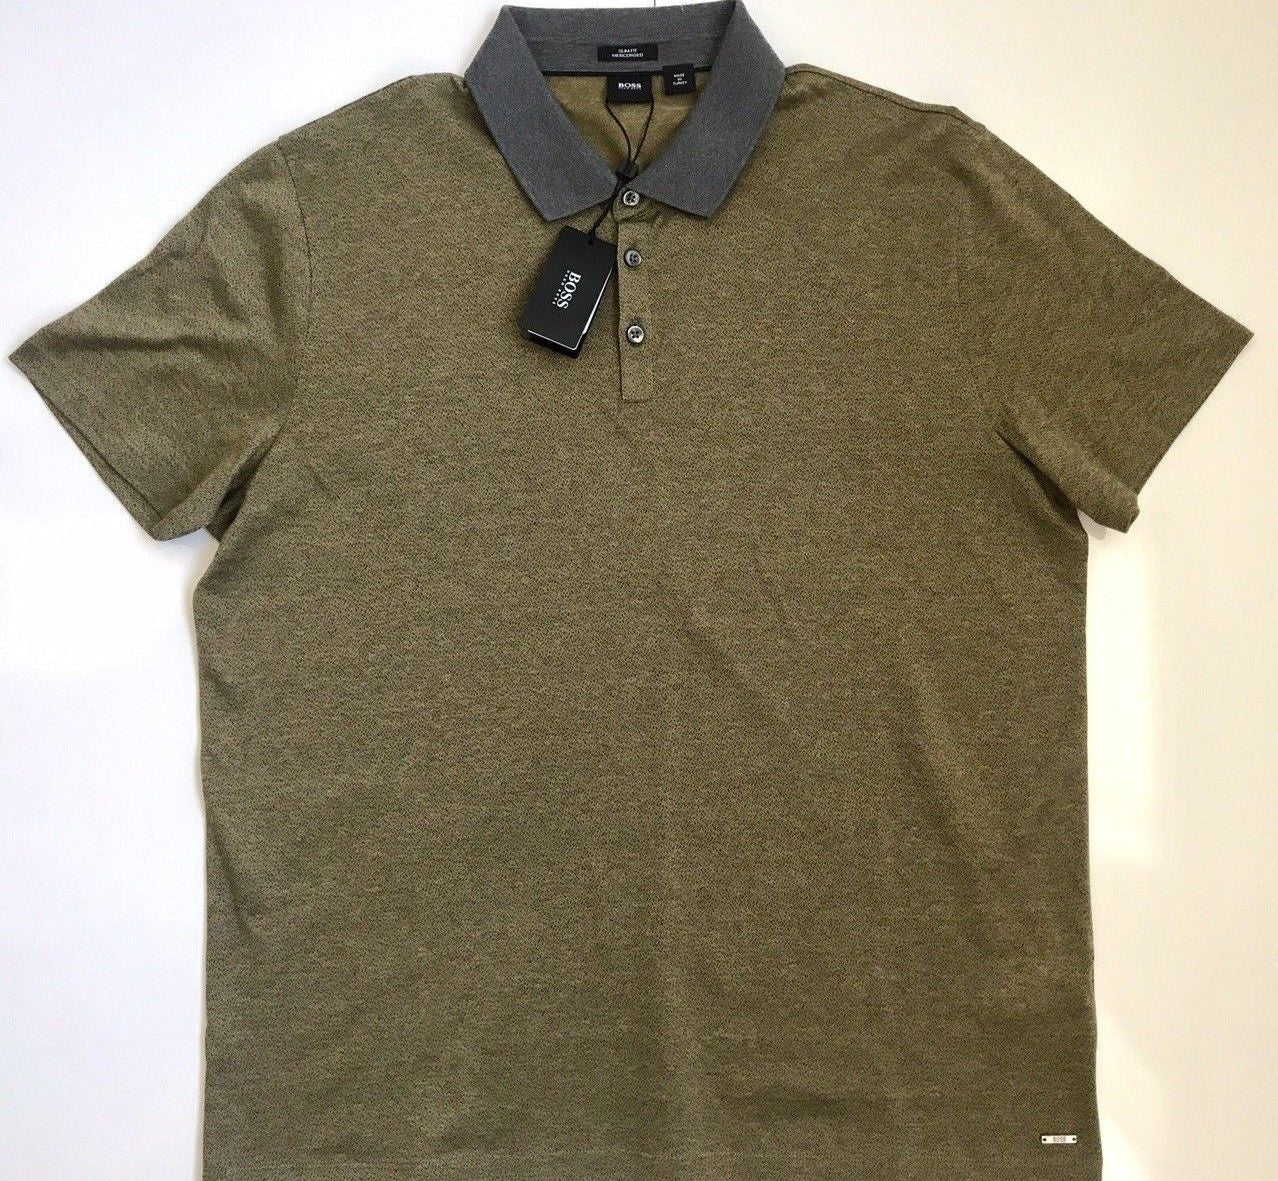 NWT $165 BOSS Hugo Boss Platt Slim Fit Mercerised Polo Shirt 2XL Green